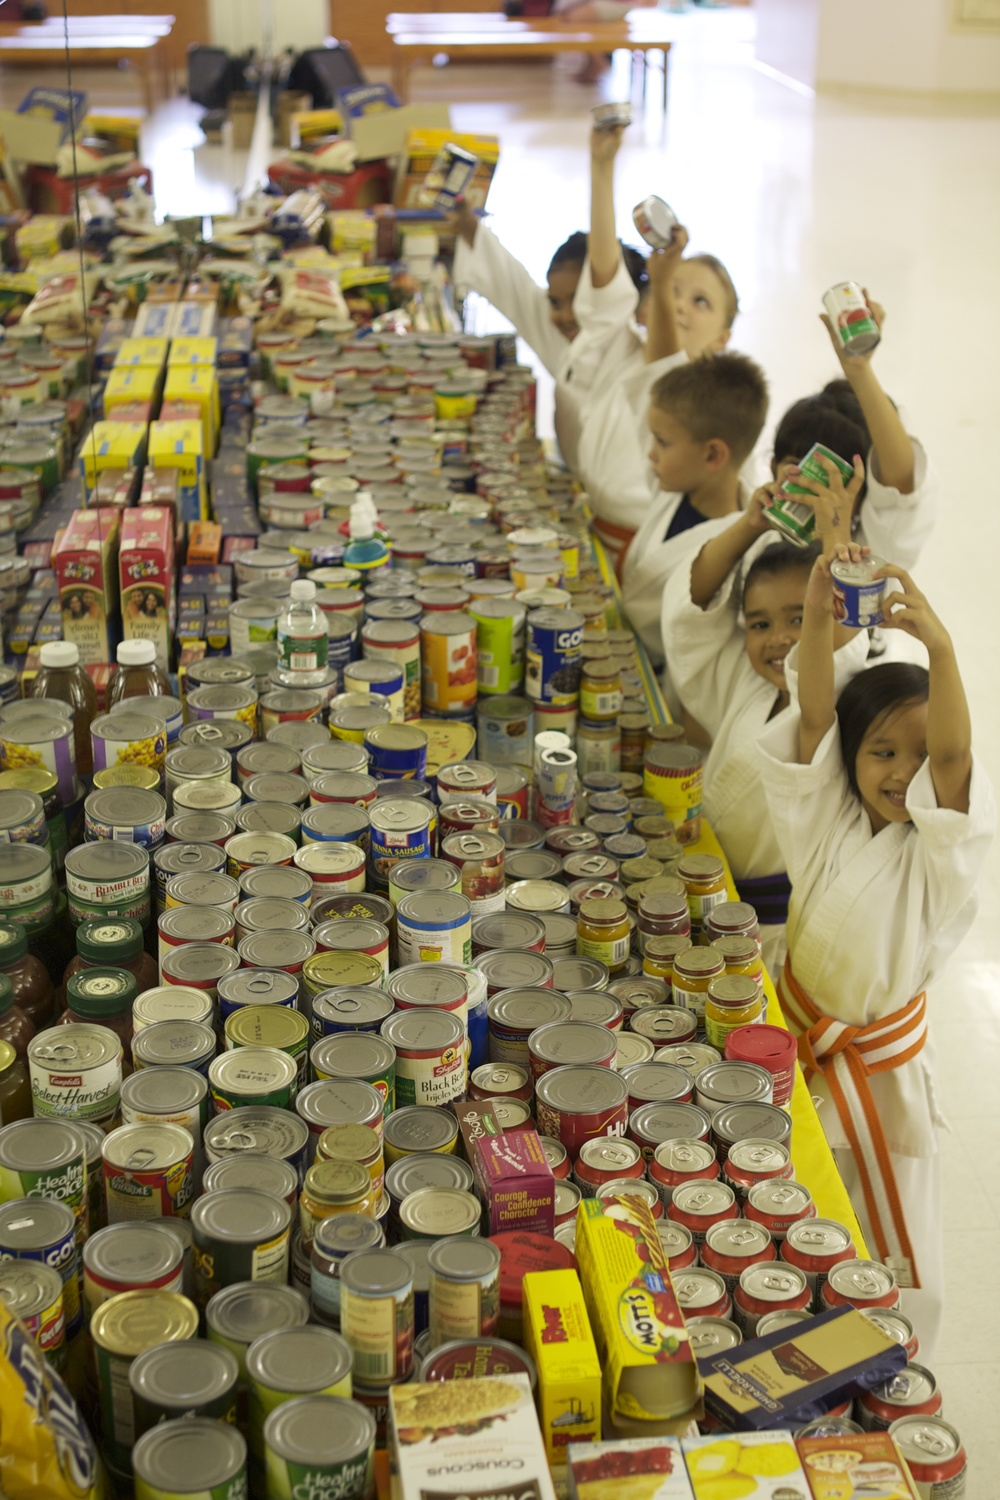 thedojo-food-drive-martial-arts-karate-kids-doing-community-service-in-rutherford-nj_14667888441_o.jpg